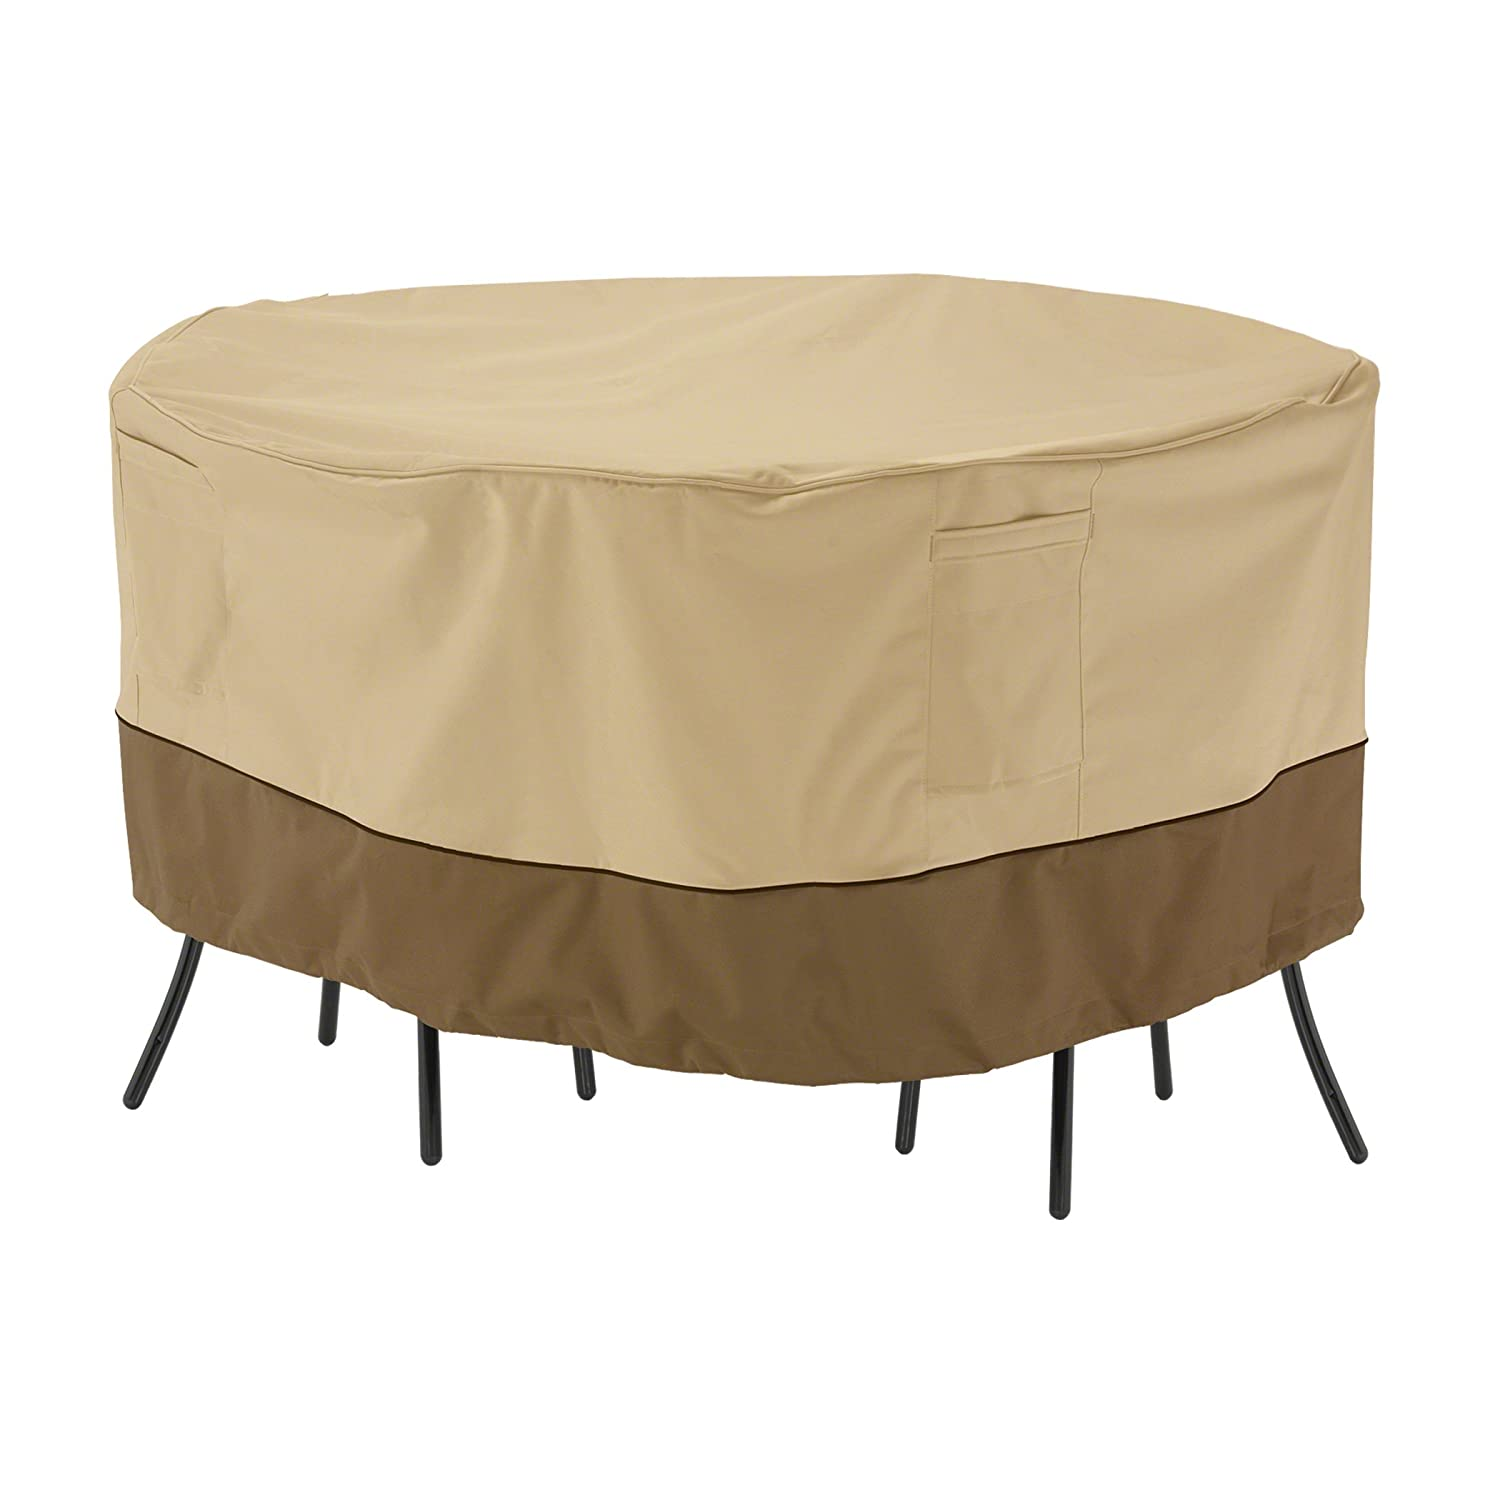 resistant ip furniture hole umbrella medium cover rectangular table water w chair classic patio set and oval accessories durable outdoor veranda